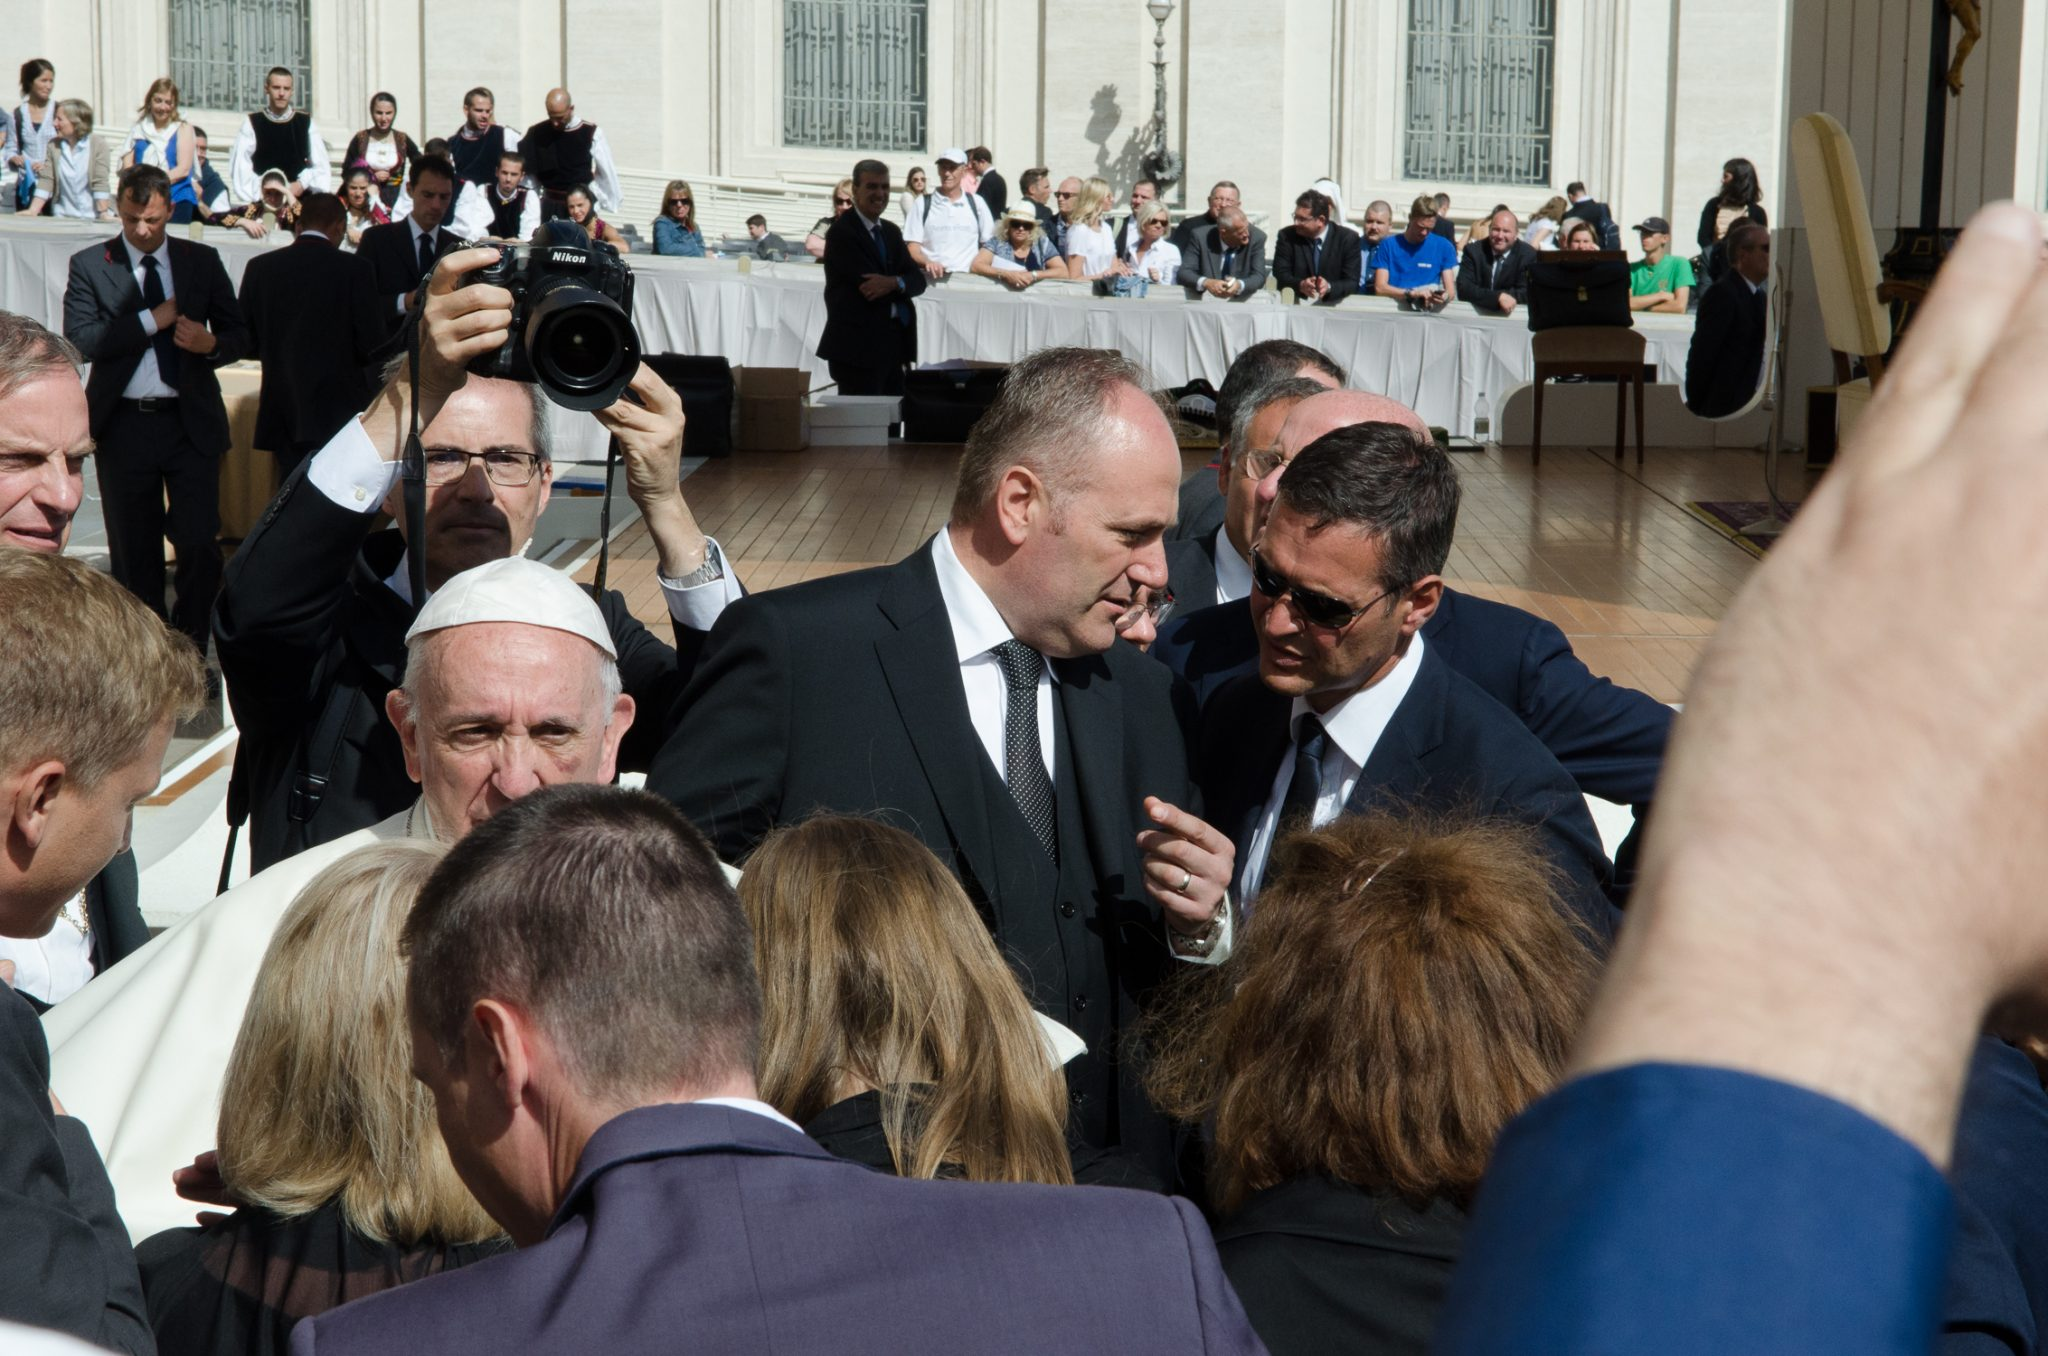 Pope Francis: The Times in which We Live Demand Profound Capacity of Discernment